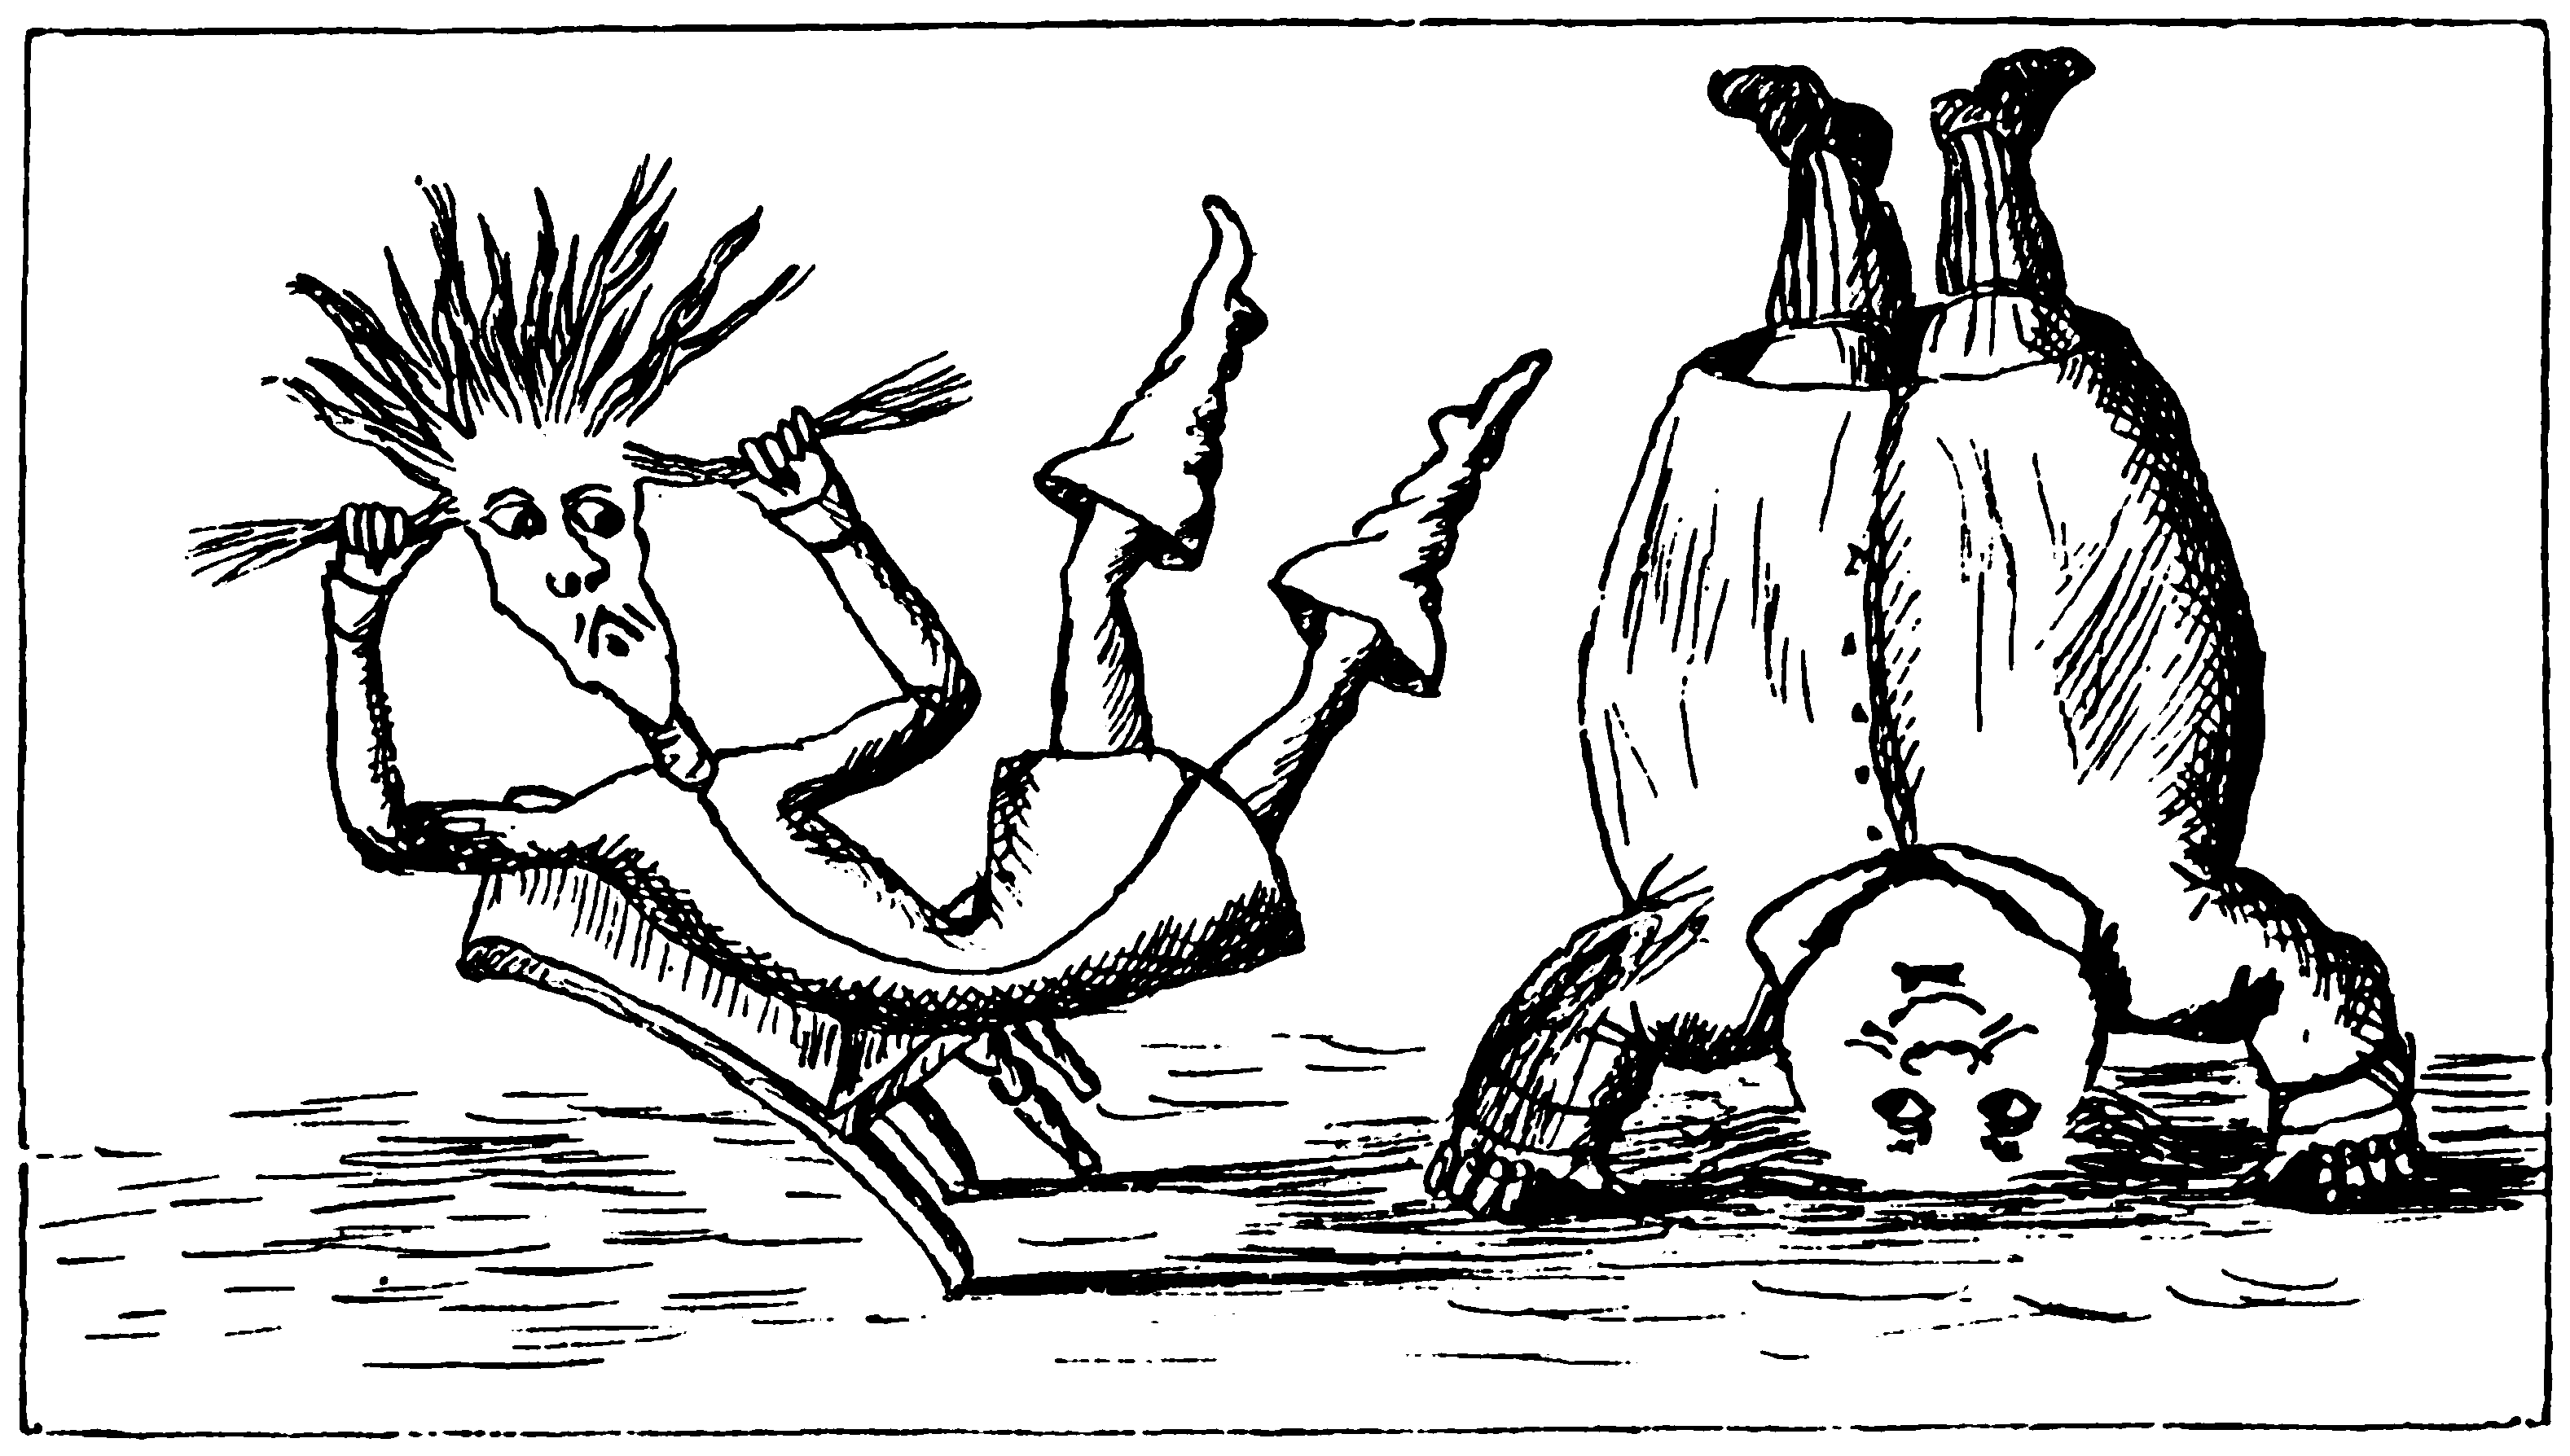 Illustration for the poem by the hand of Lewis Carroll himself